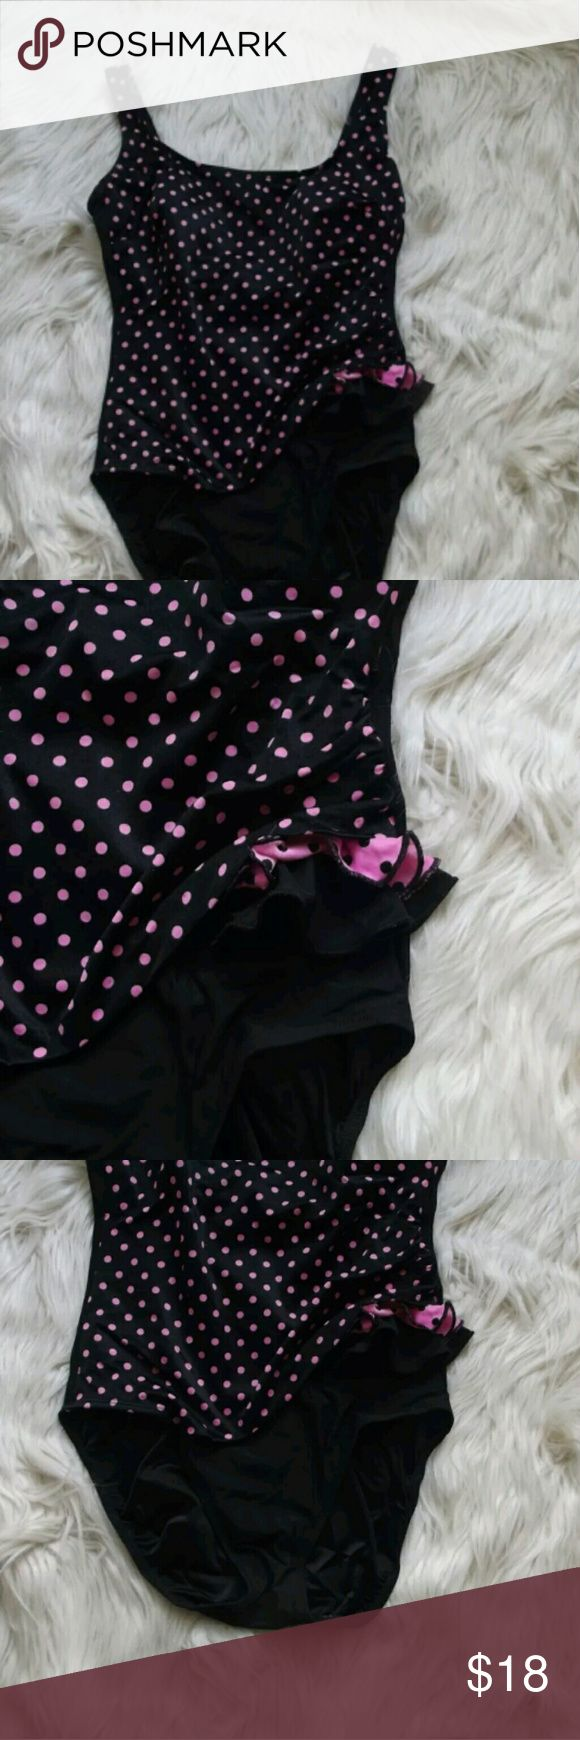 Longitude Black Polka Dot One Piece Bathing Suit Longitude Black & Pink Polka Dot One Piece Bathing Swimsuit ?Womens Size 10  In good condition. Has side ruffle detail that adds flair. Polka dot overlay on front of suit. Built in wire free bra. 85% nylon 15% lycra. Hand wash cold.?  Measurements Flat:  Pit to Pit: 17 inches  Length: 29 inches longitude  Swim One Pieces